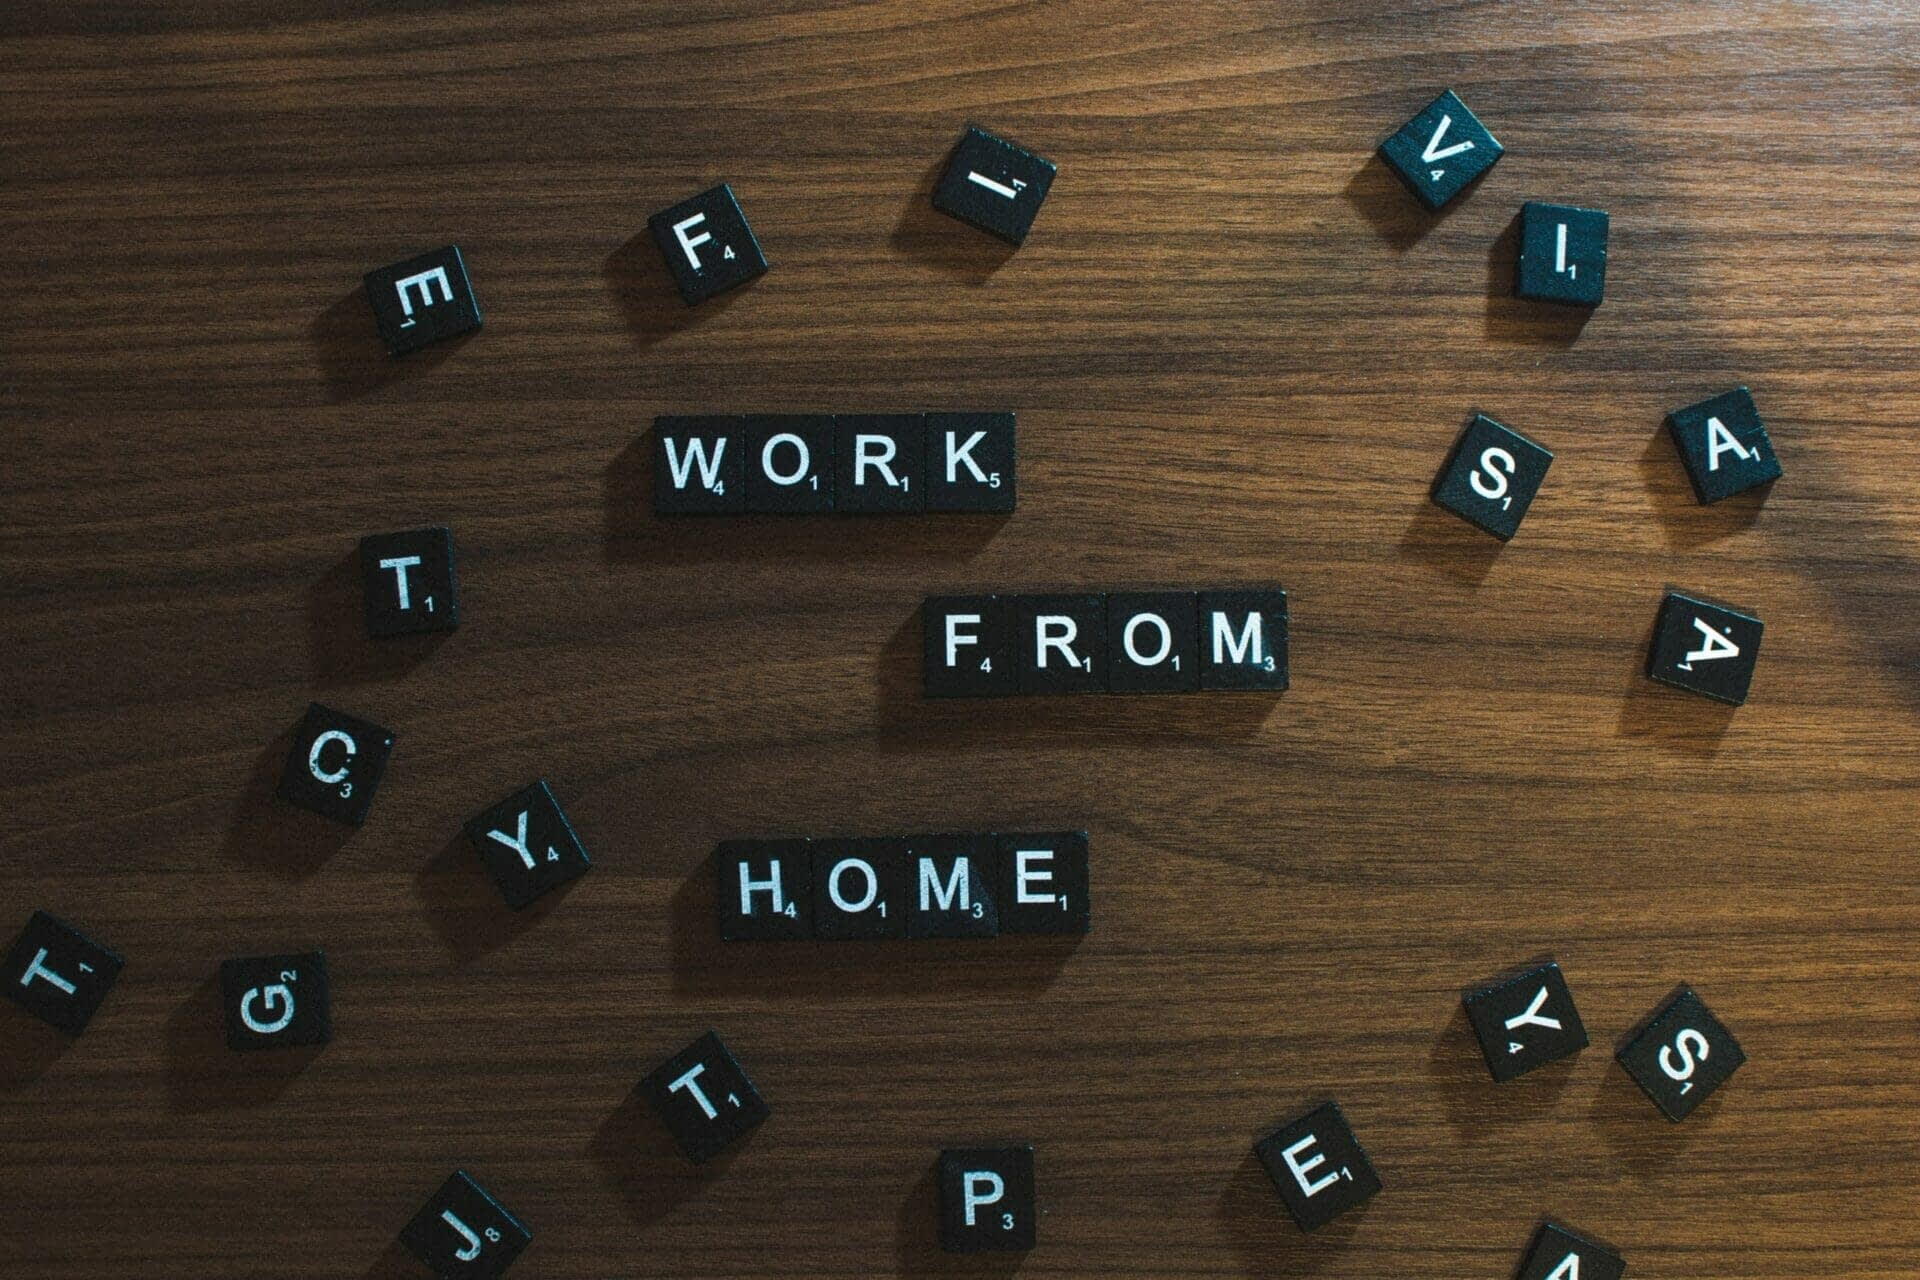 Work from Home scrabble board